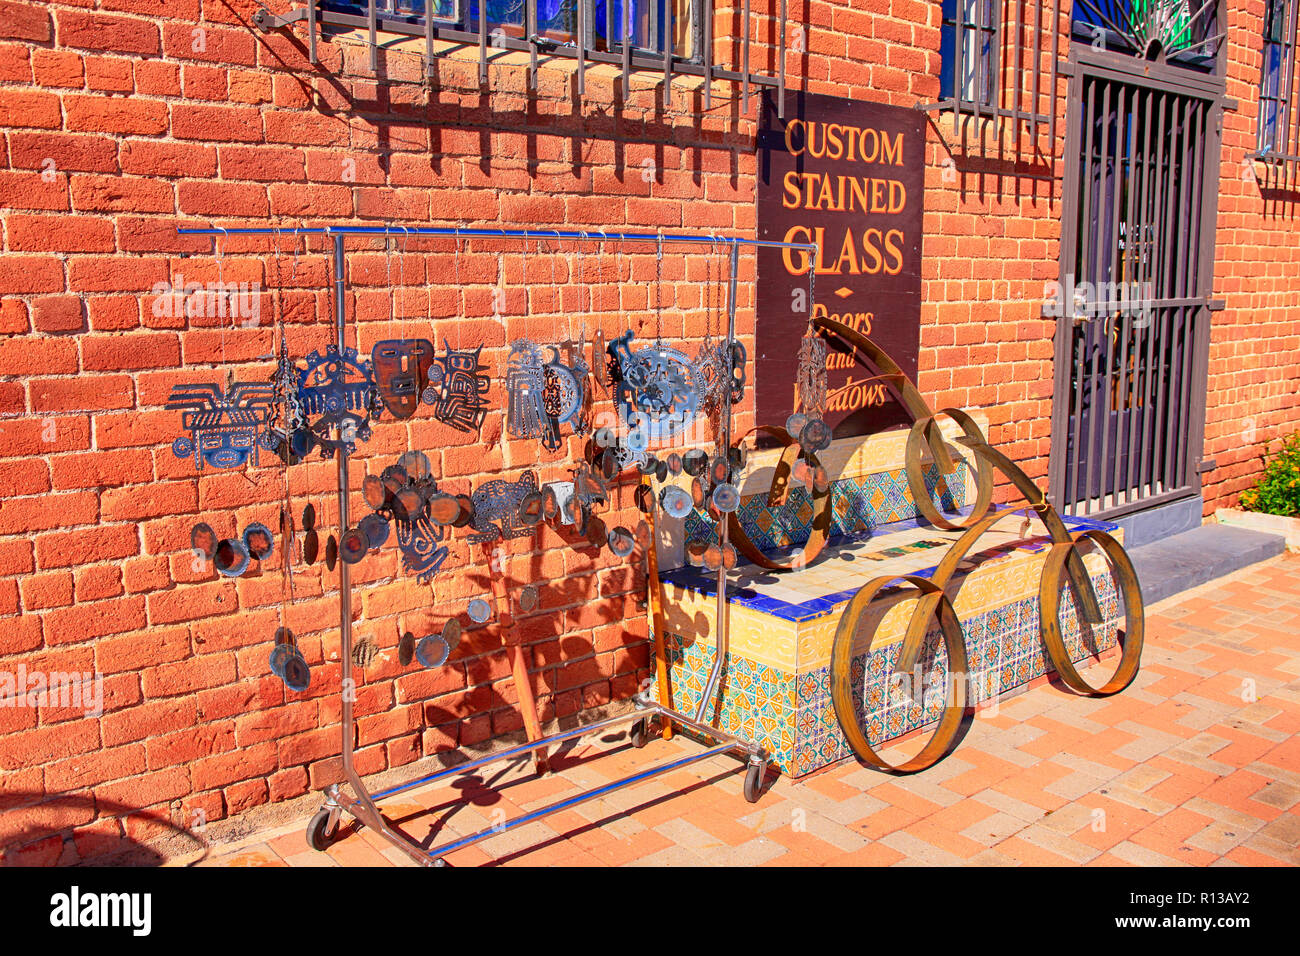 Custom stained glass, pottery and metalwork store in the Lost Barrio shopping district of Tucson, AZ - Stock Image